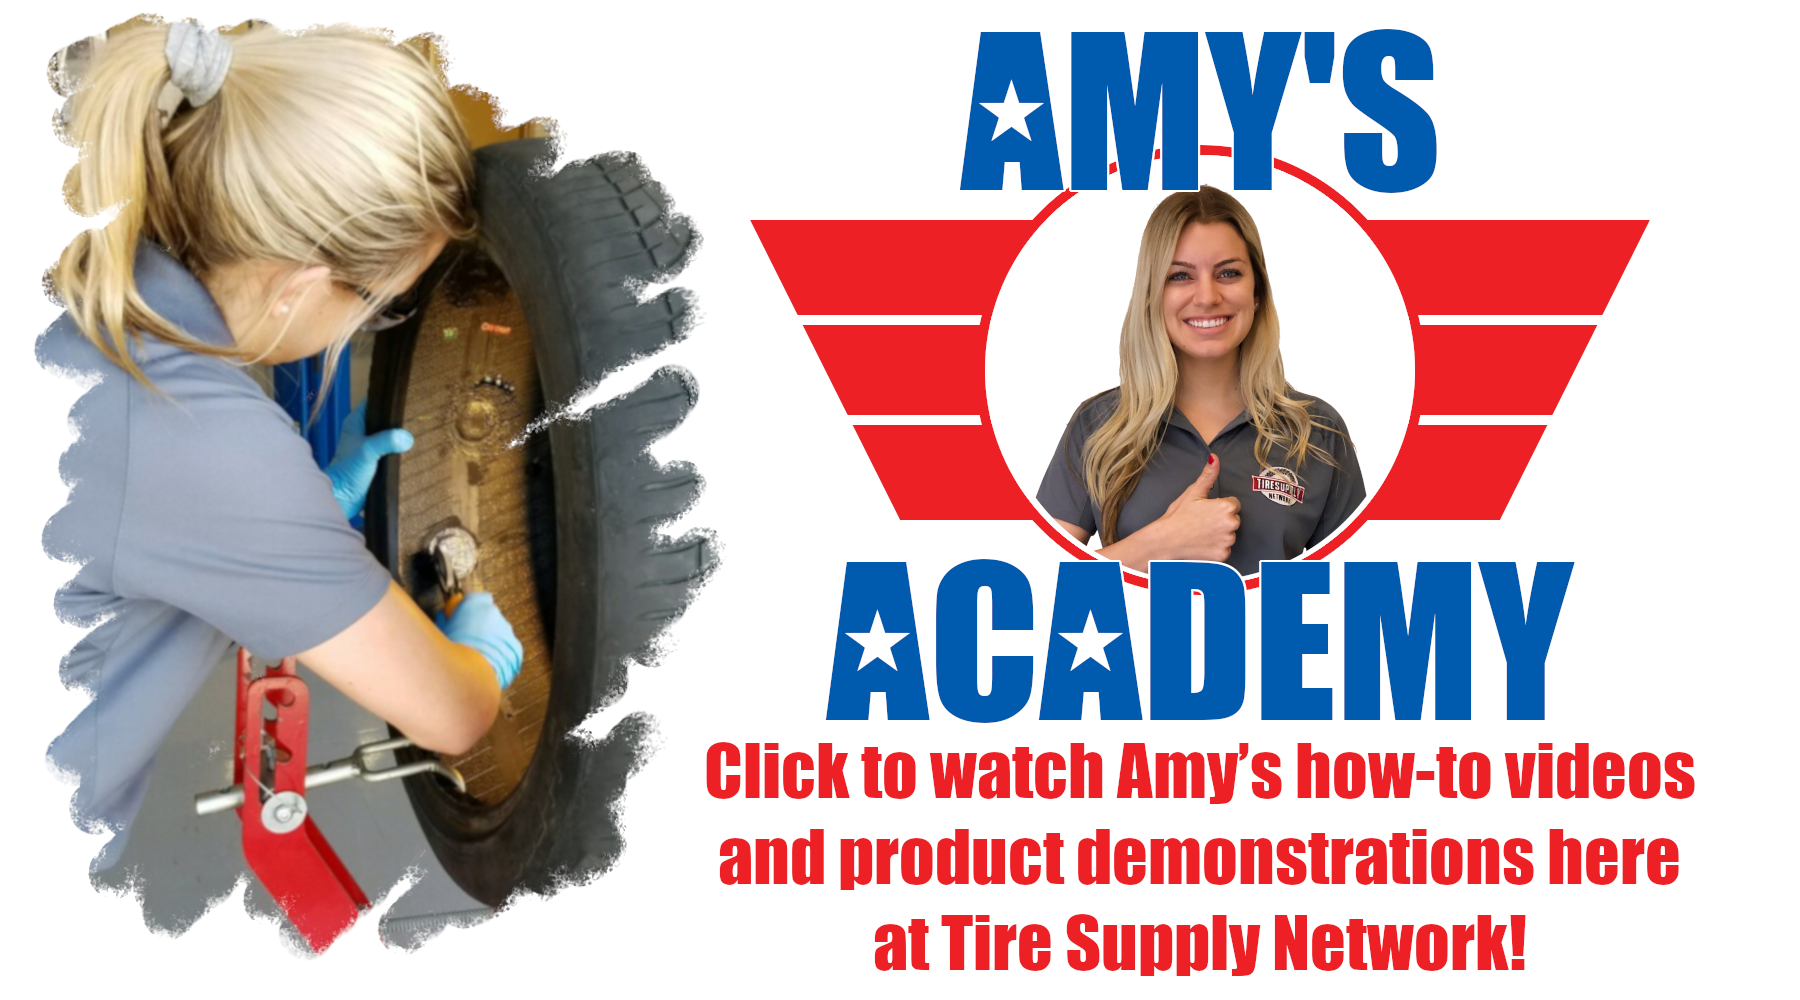 TSN-amys-academy-how-to-videos-product-demonstrations-information-new-products-programs-features-tire-supplies-tire-repair-tire-supplier-valve-stems-wheel-weights-tire-patches